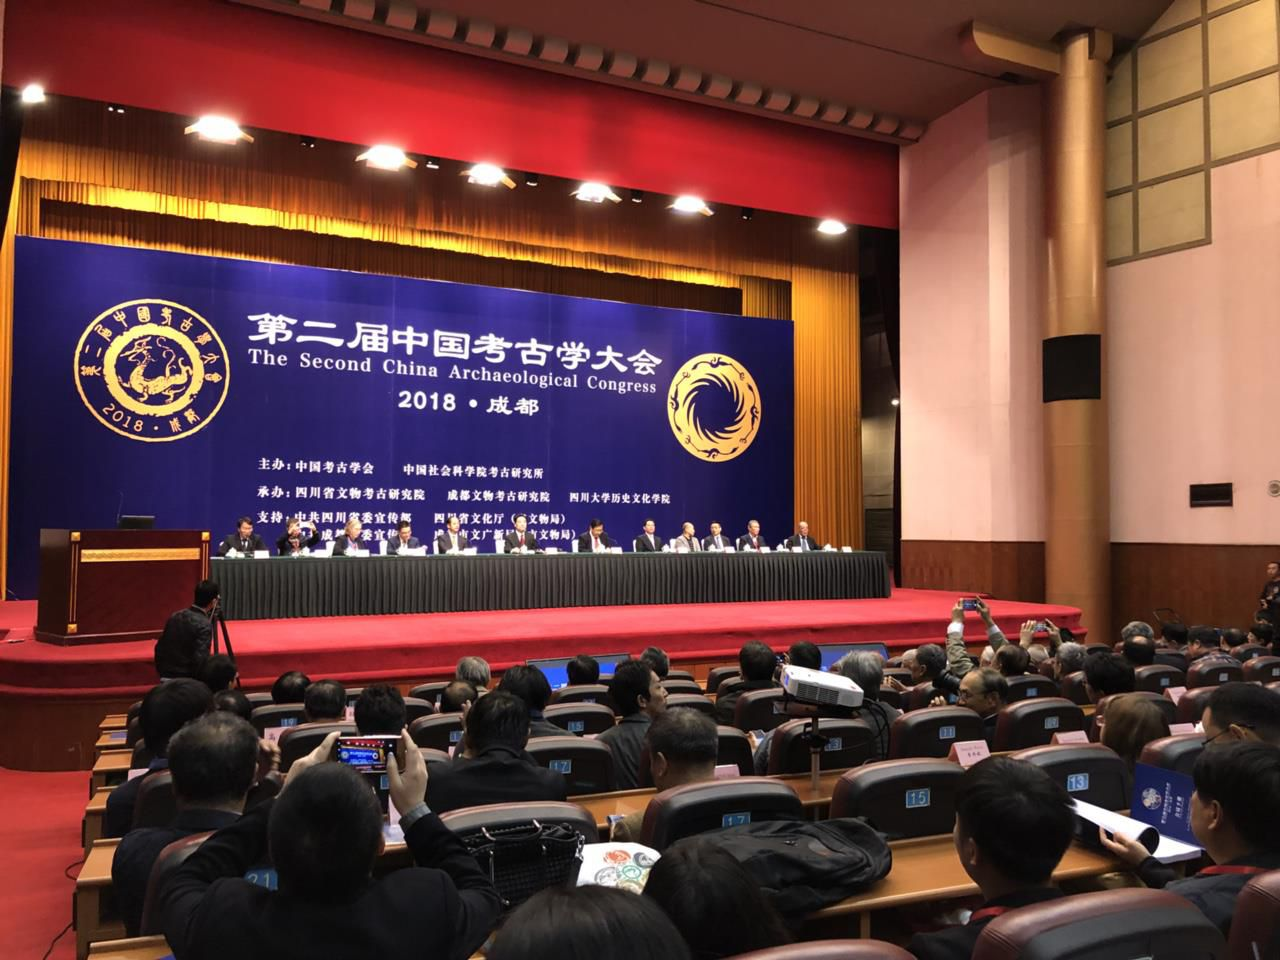 VNMH's delegation attended the 2nd China Archaeological Conference, 2018